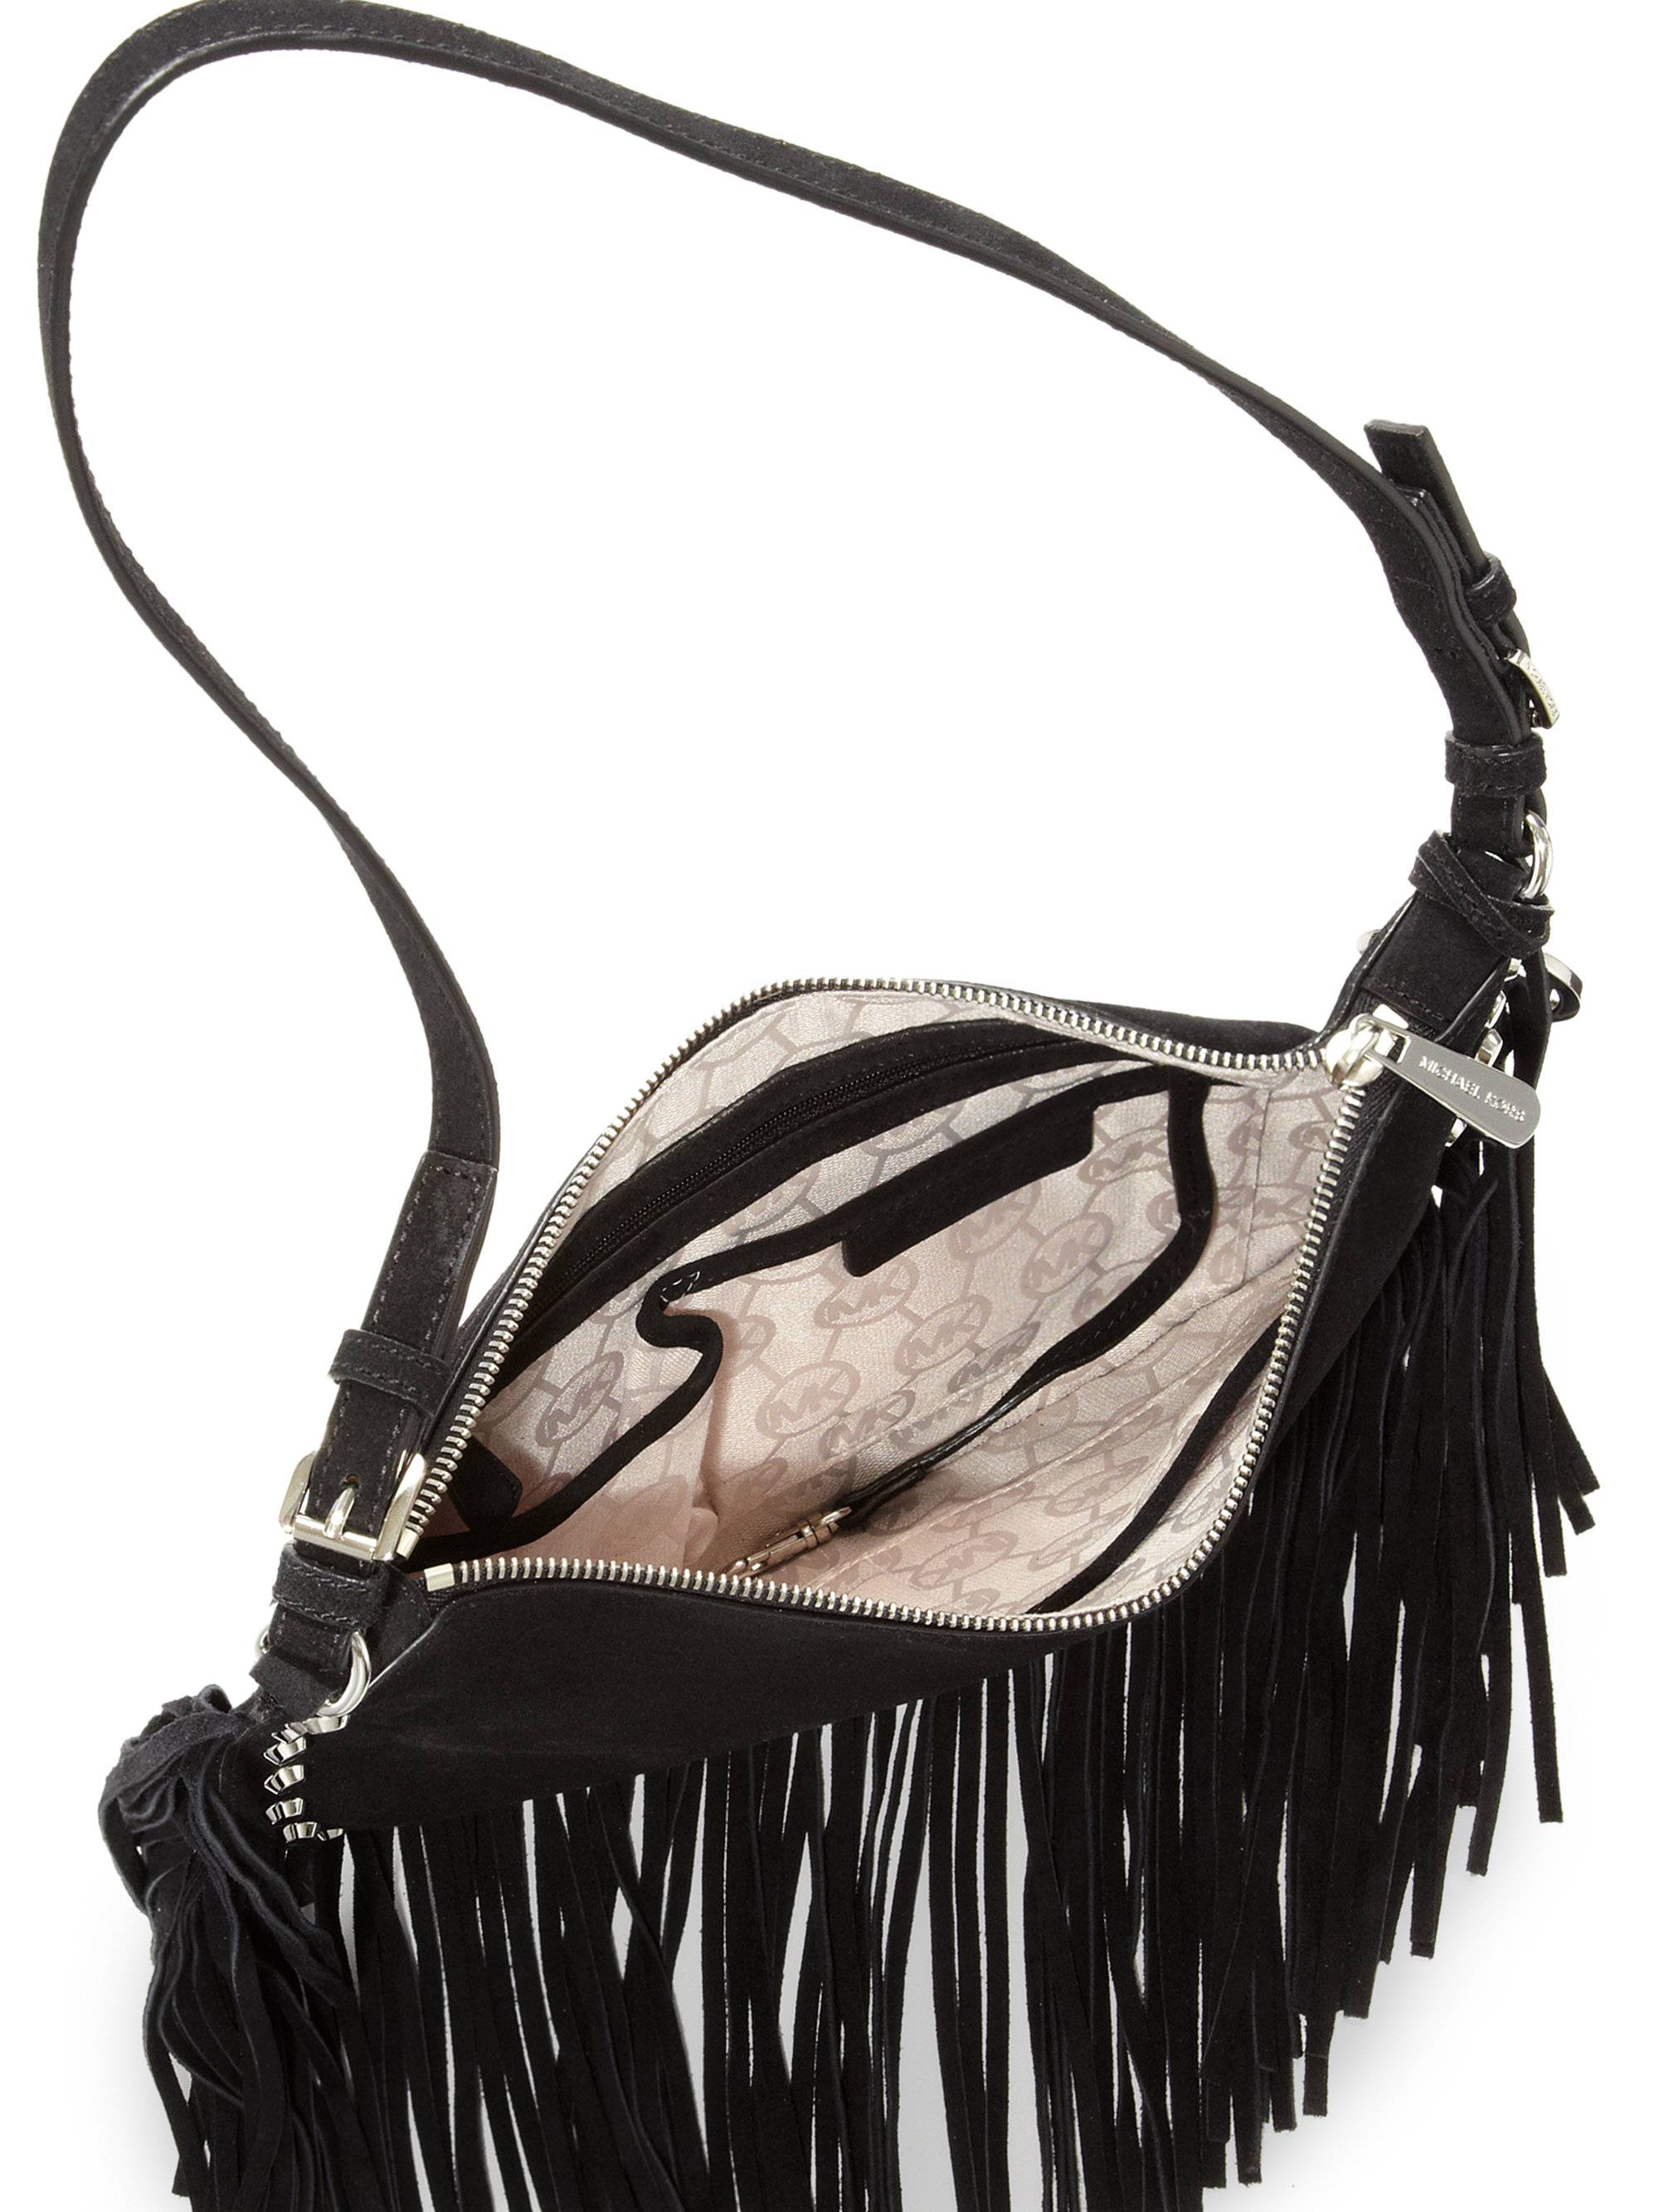 506e0c6e4b0d Mk Black With Fringe Crossbody Bags | Stanford Center for ...